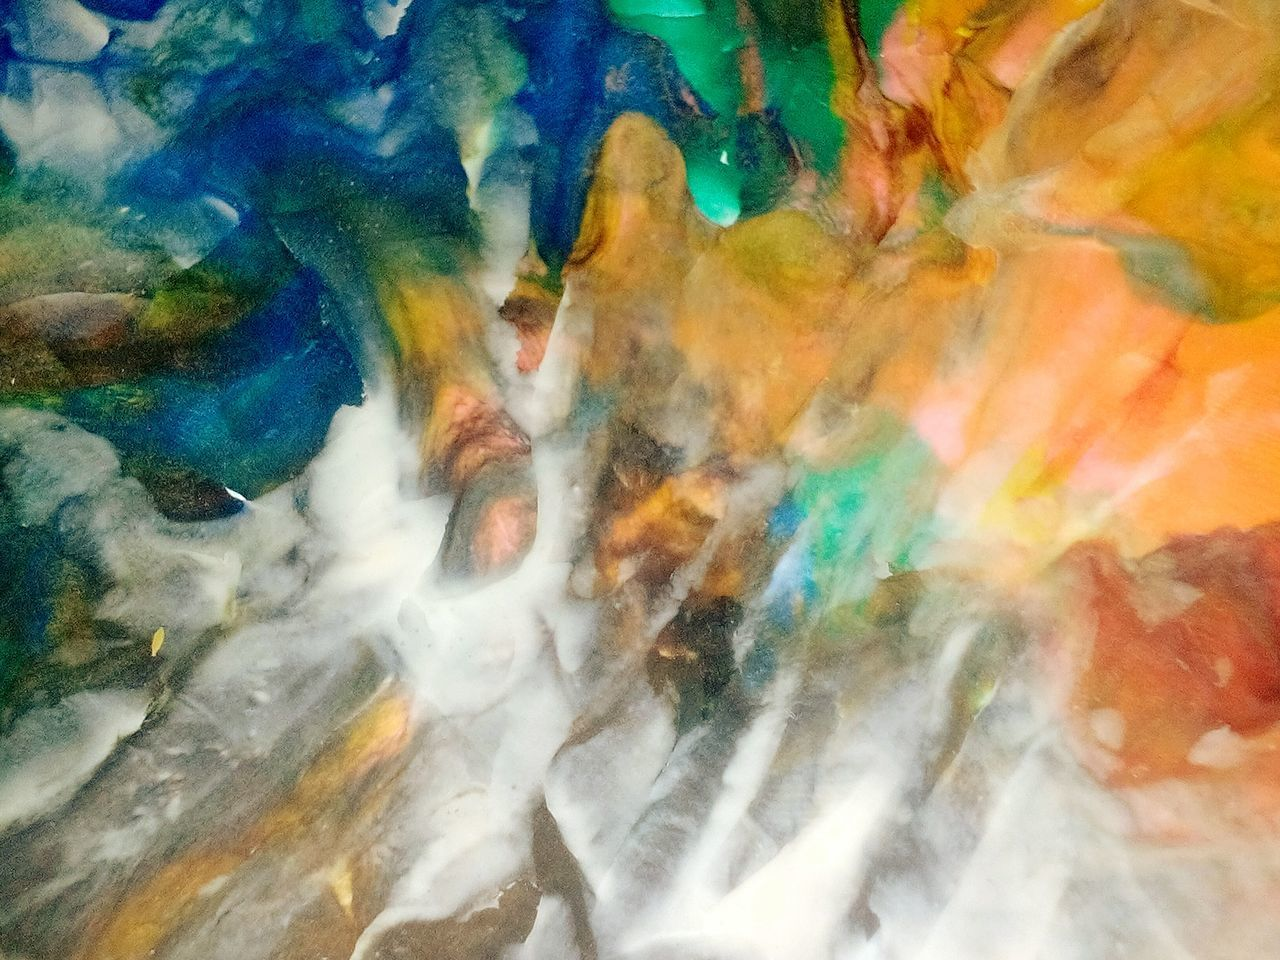 full frame, multi colored, backgrounds, water, no people, outdoors, day, close-up, oil spill